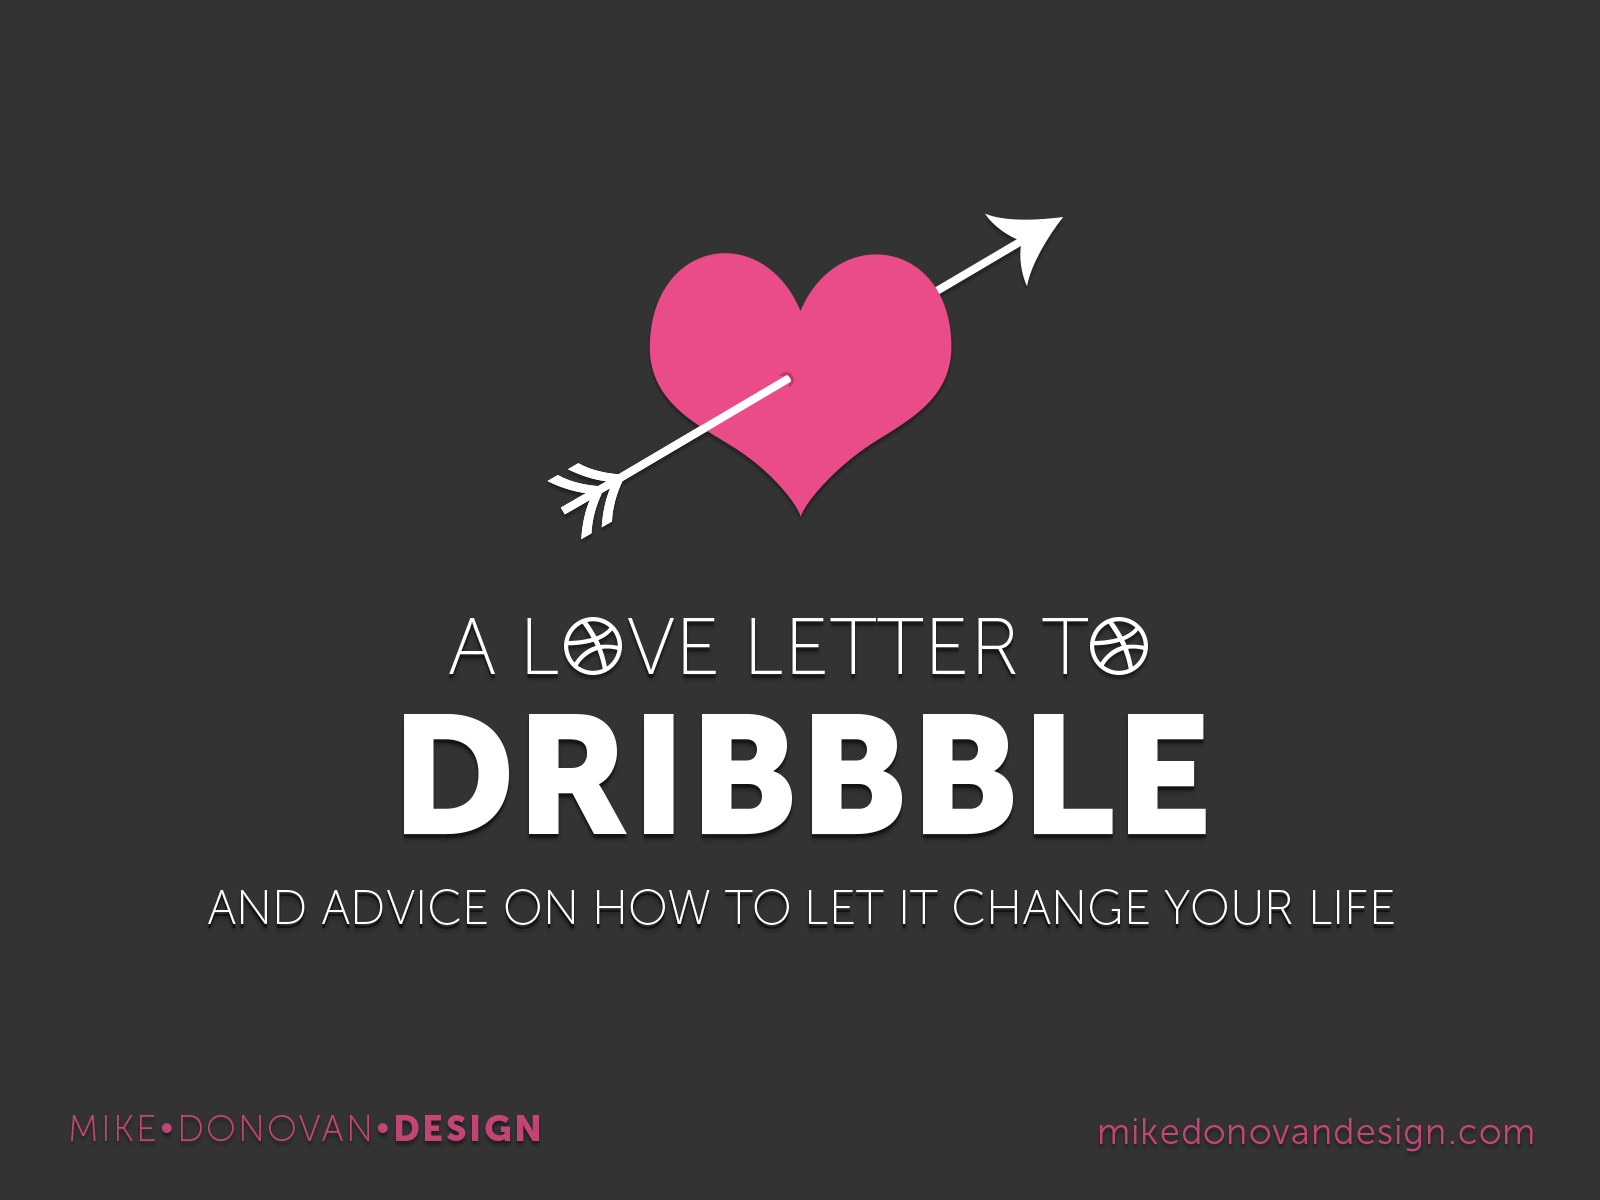 A Love Letter to Dribbble